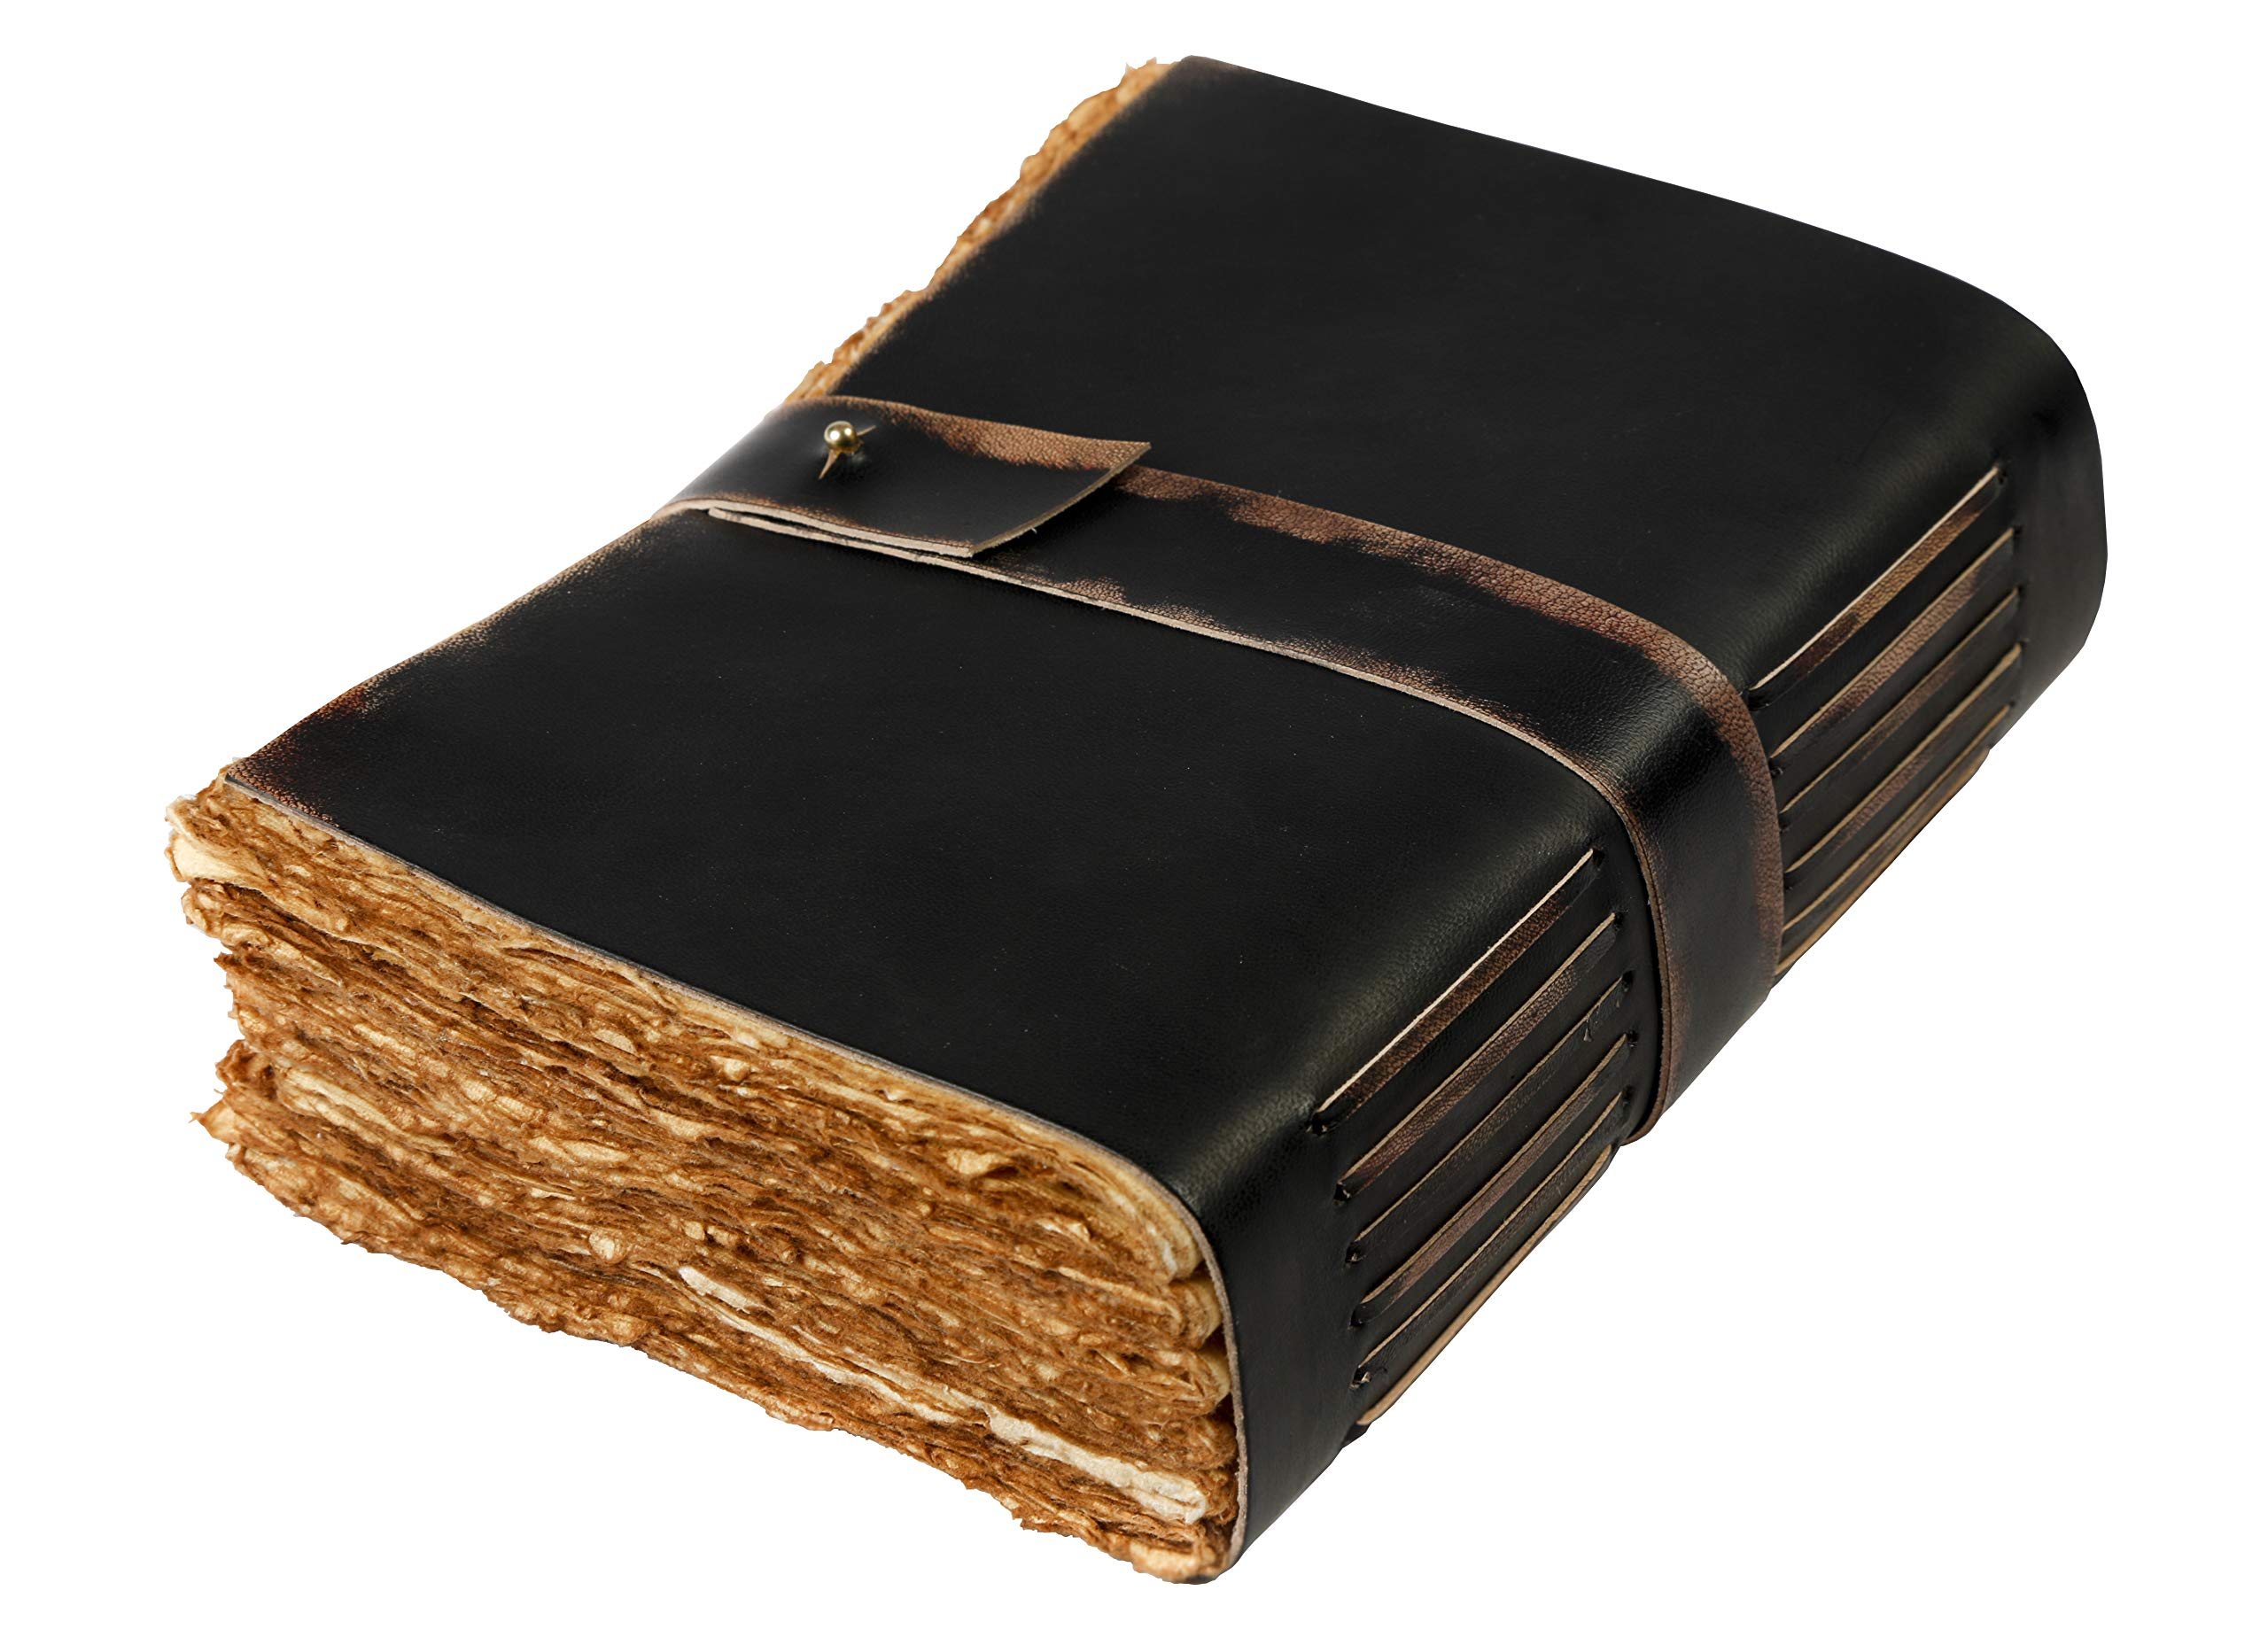 Leather Village-Vintage Leather Journal Writing Notebook-Leather Bound journals to write in present for women men. journaling sketching painting Fountain calligraphy pen. 7X5 inches, 288 deckle pages by Leather Village